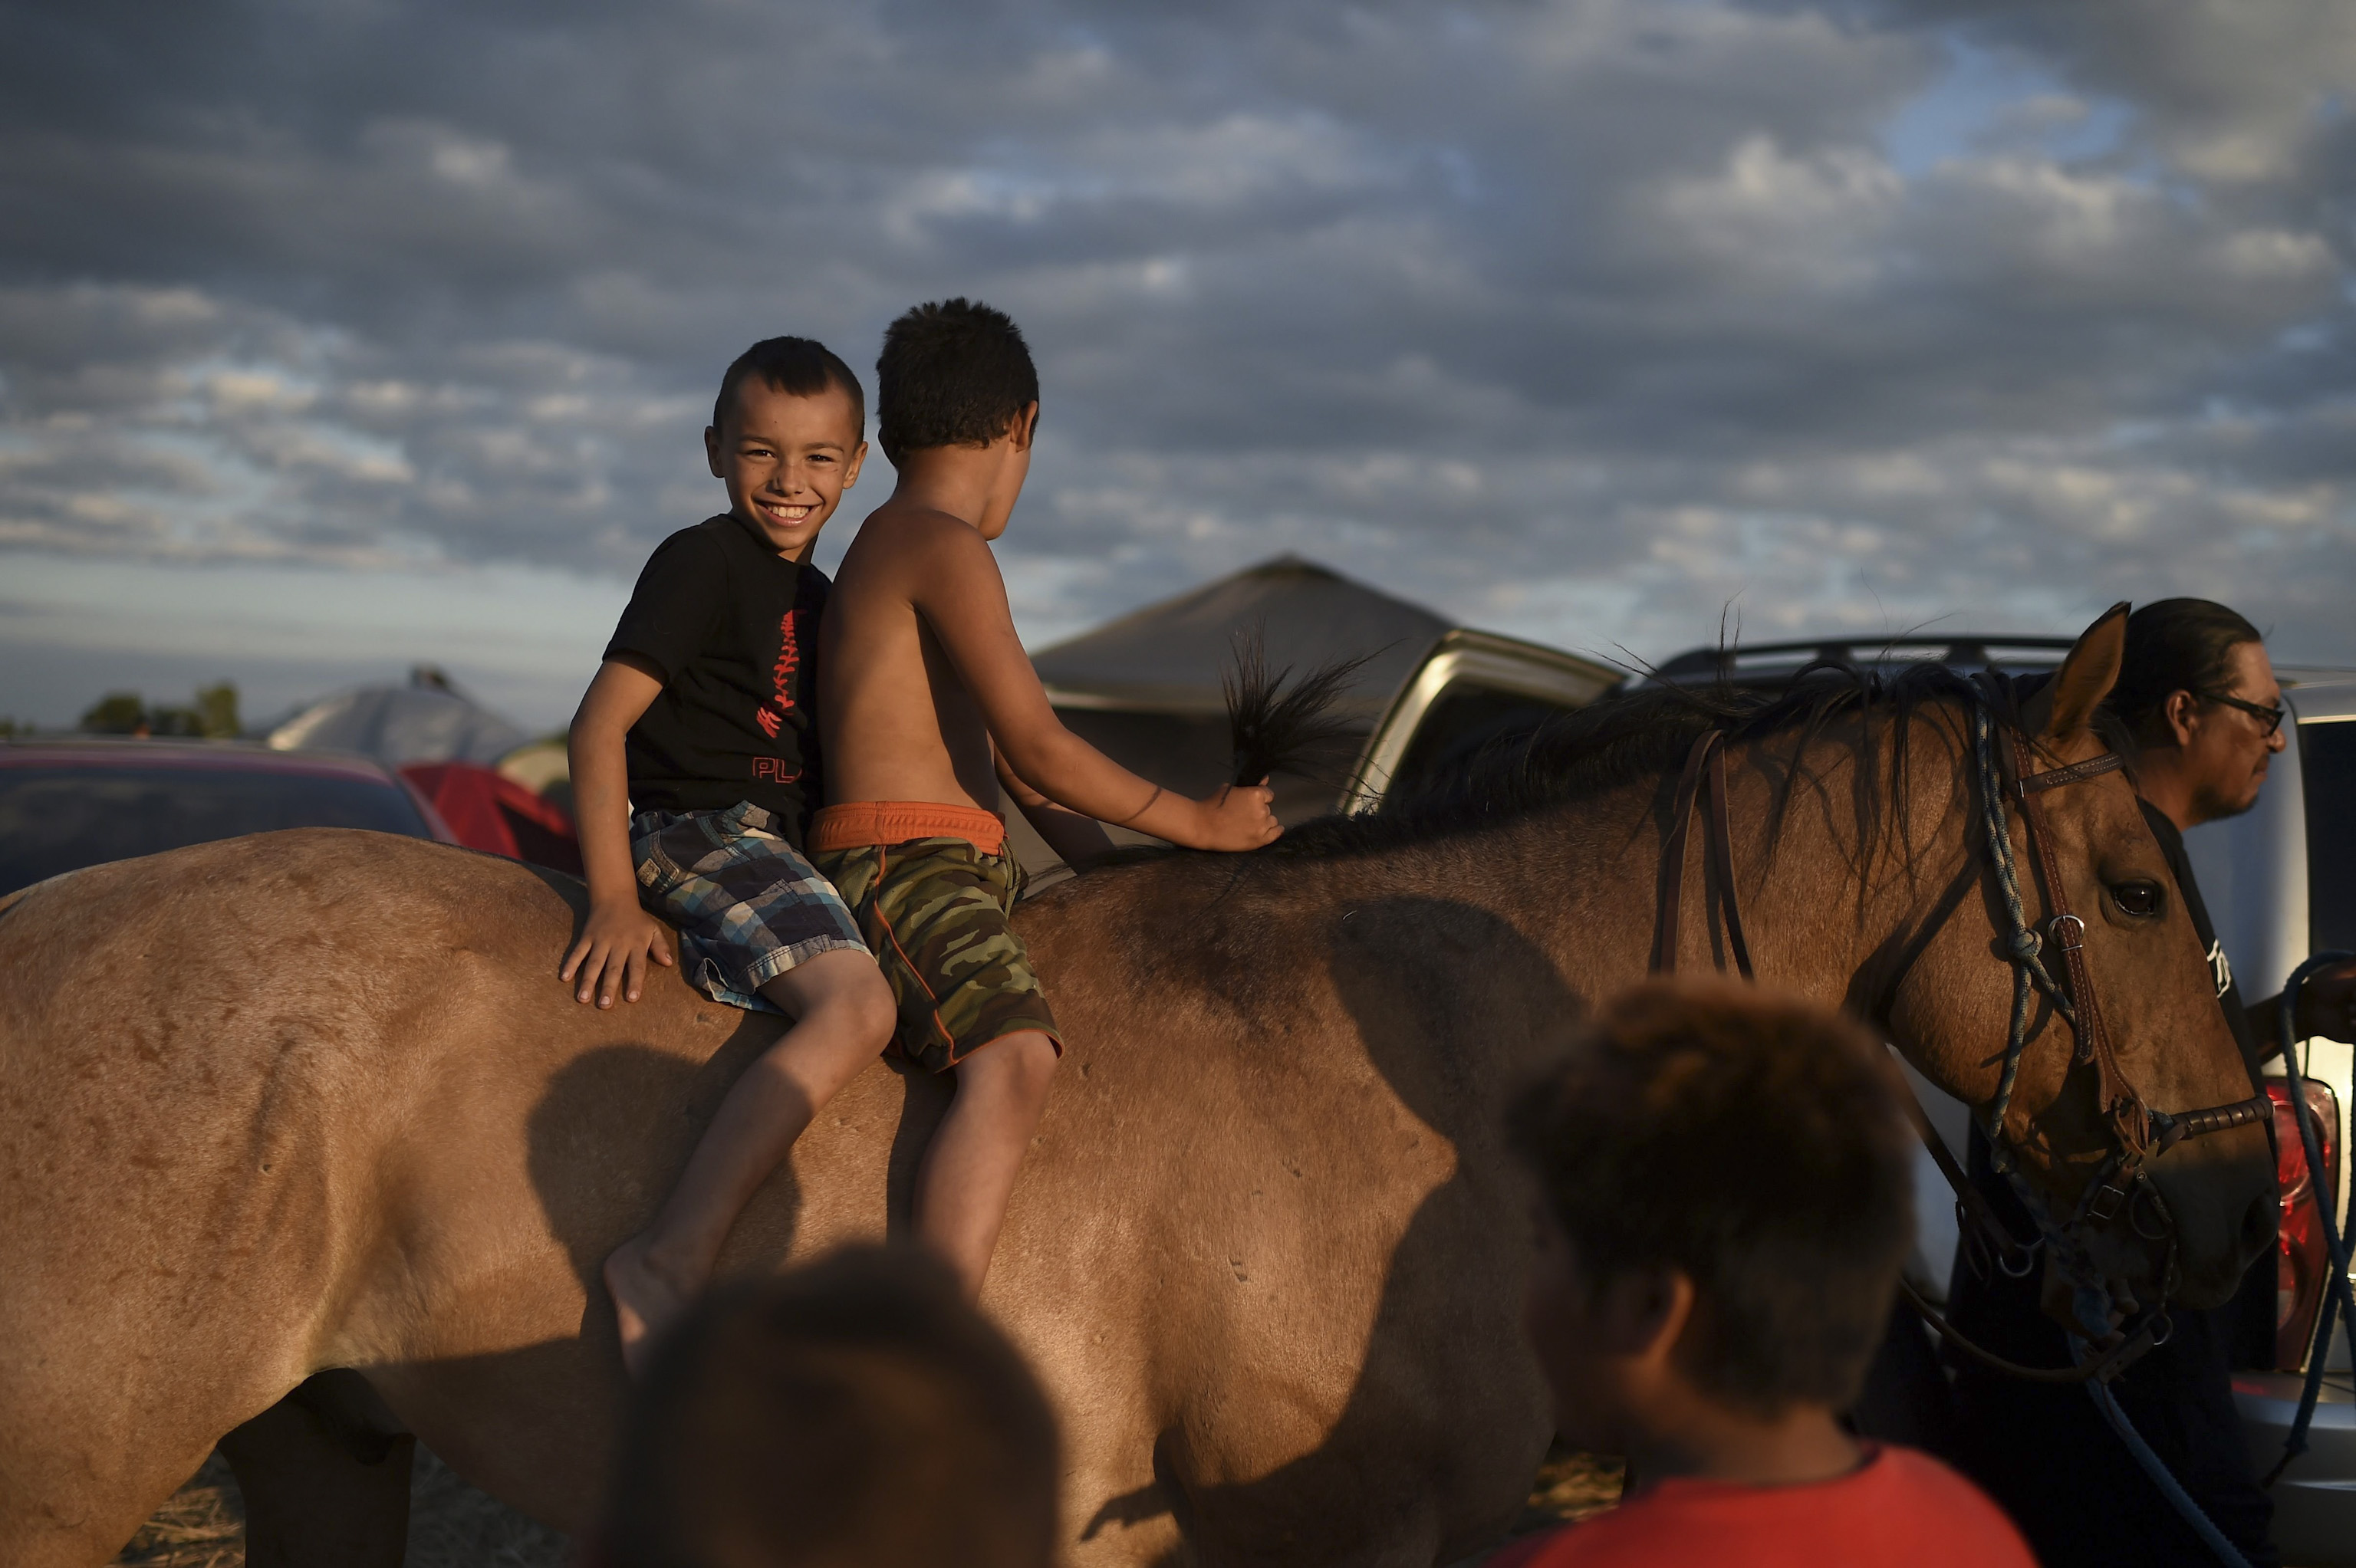 Boys enjoy a later afternoon horseback ride at an encampment where hundreds of people gathered to join the Standing Rock Sioux Tribe's protest against the construction of the Dakota Access Pipe (DAPL), near Cannon Ball, North Dakota, September 3, 2016.